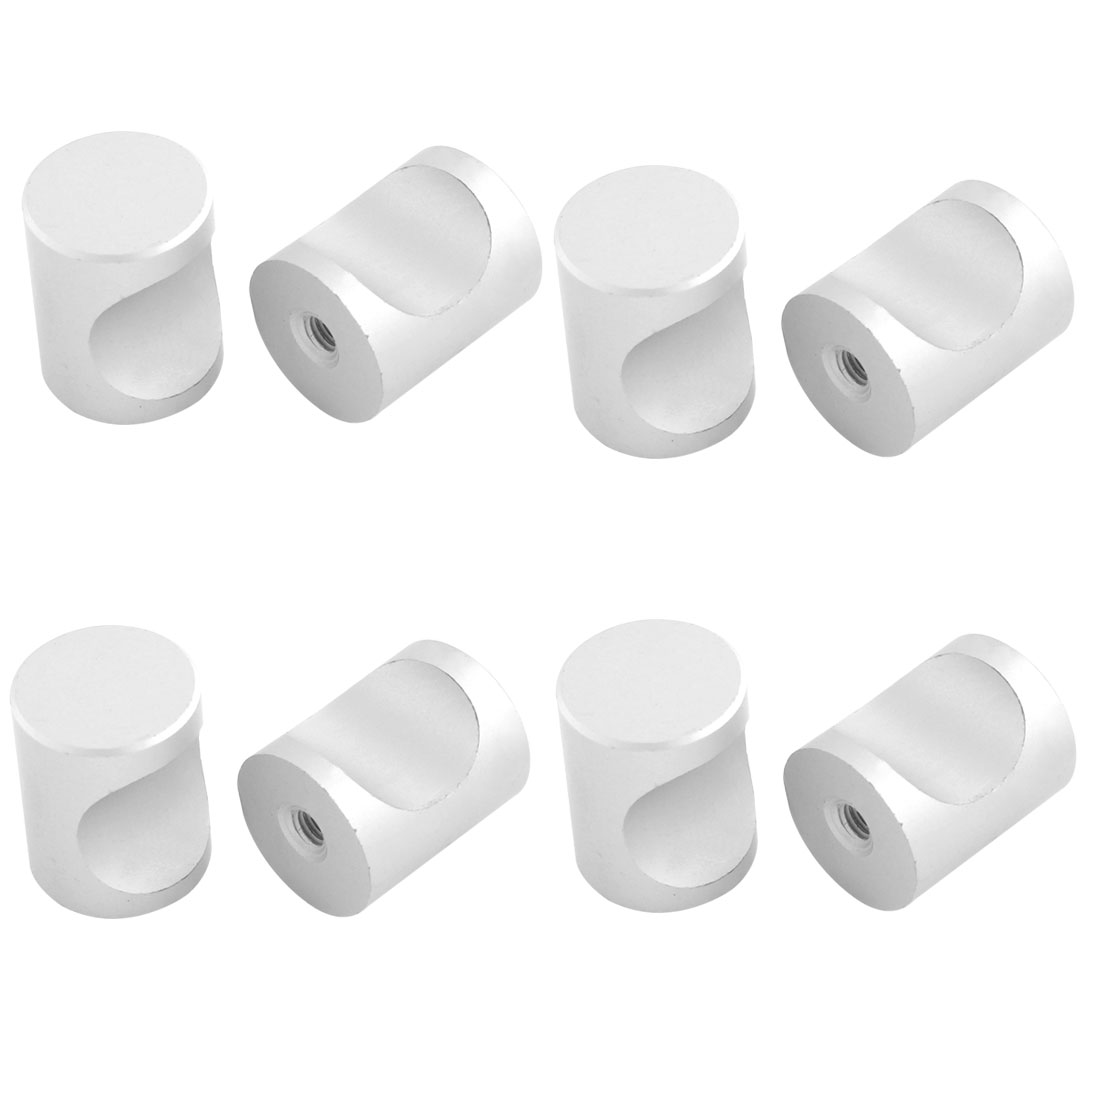 8pcs Aluminum Alloy Cabinet Drawer Cupboard Door Cylinder Shape Pull Handles